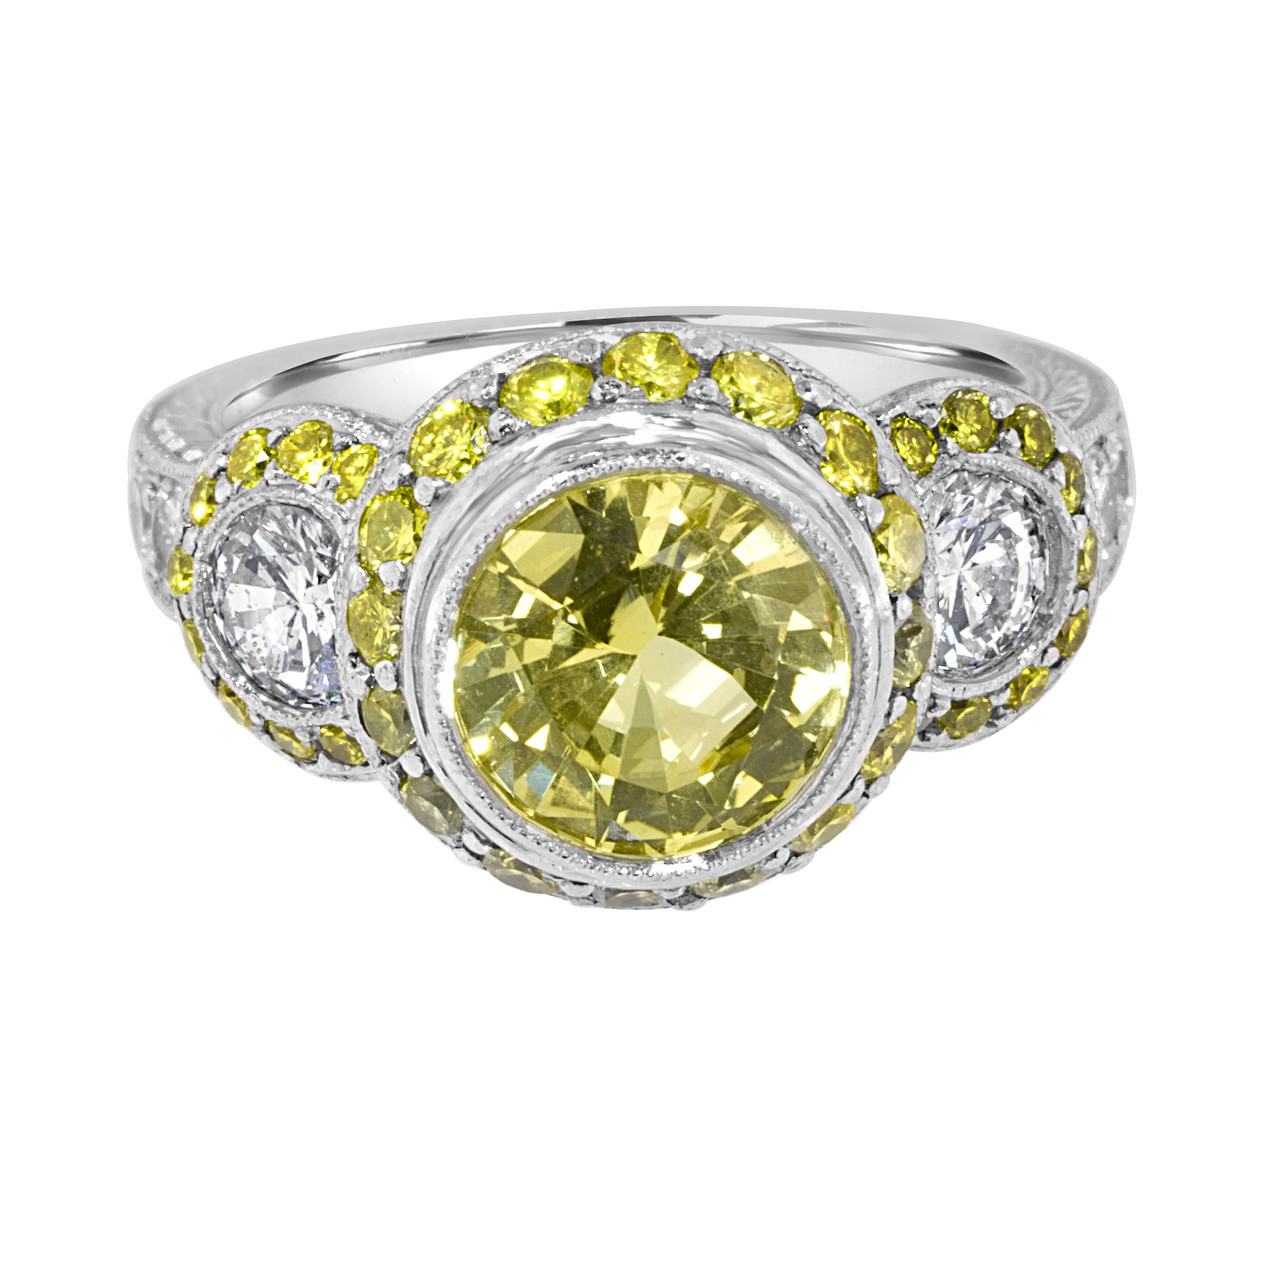 361e31d6de867 Yellow Sapphire Vintage Style Engagement Ring with Yellow Diamonds